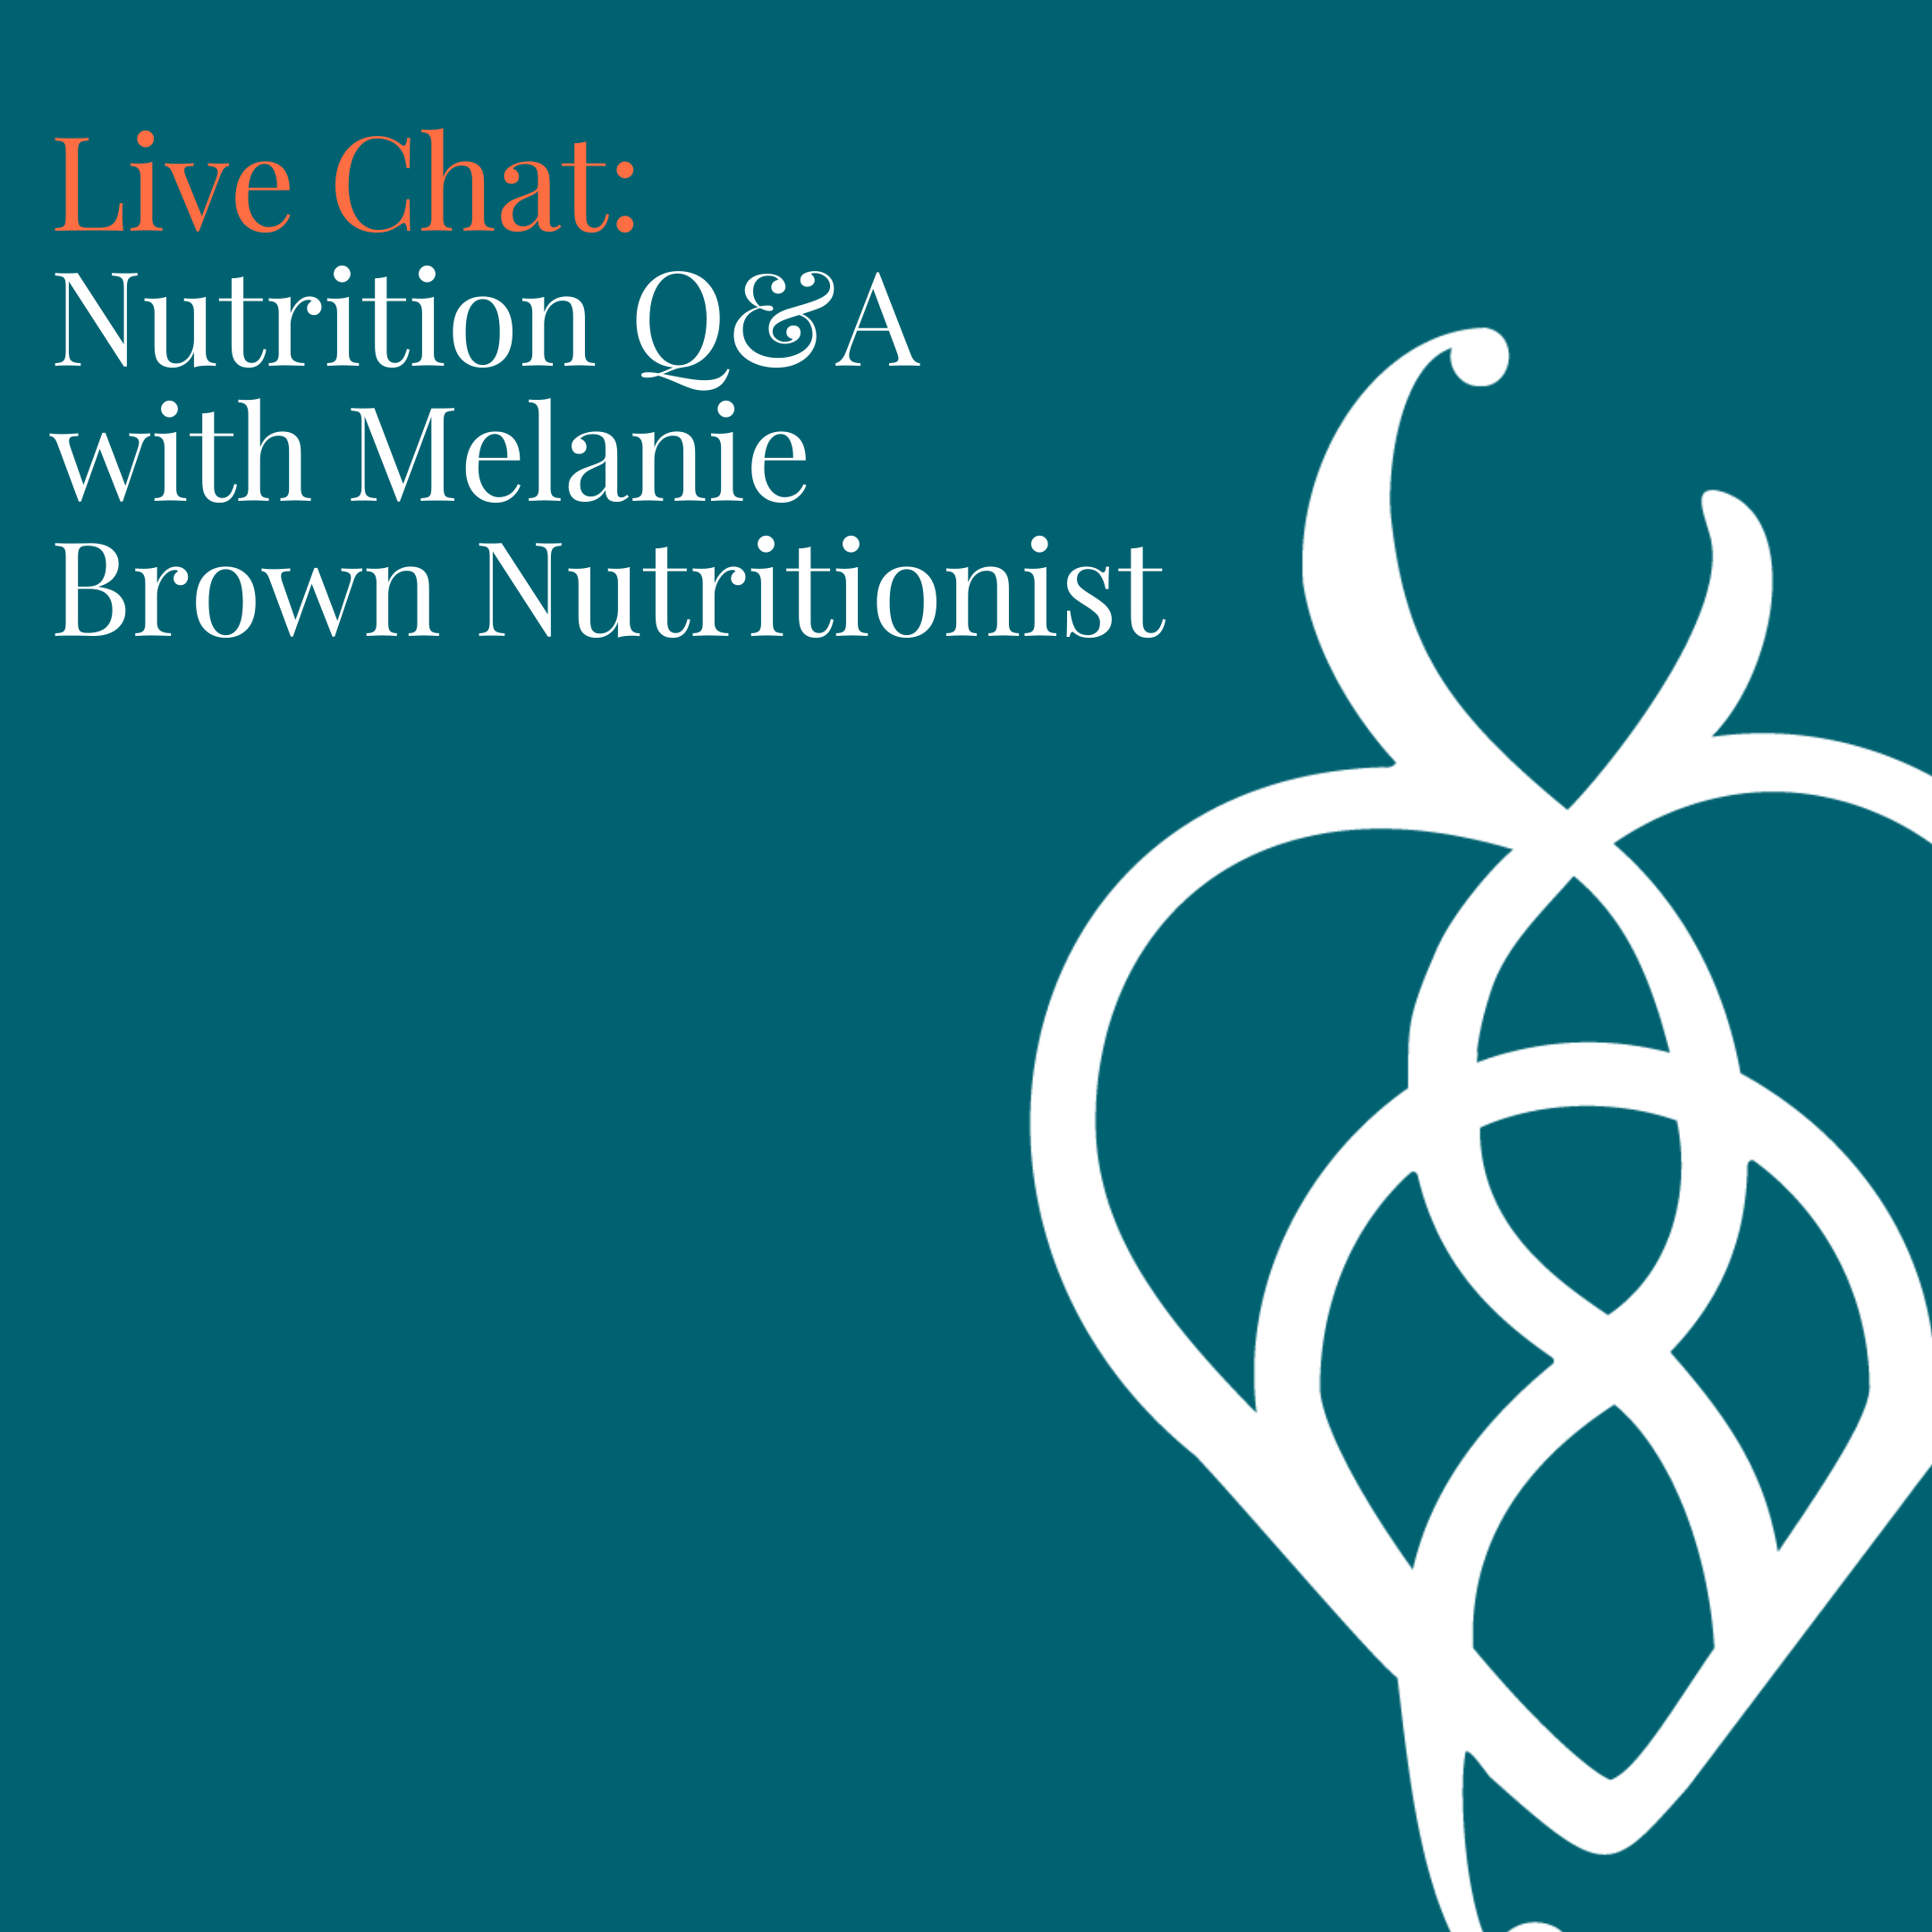 Nutrition Q&A with Melanie Brown